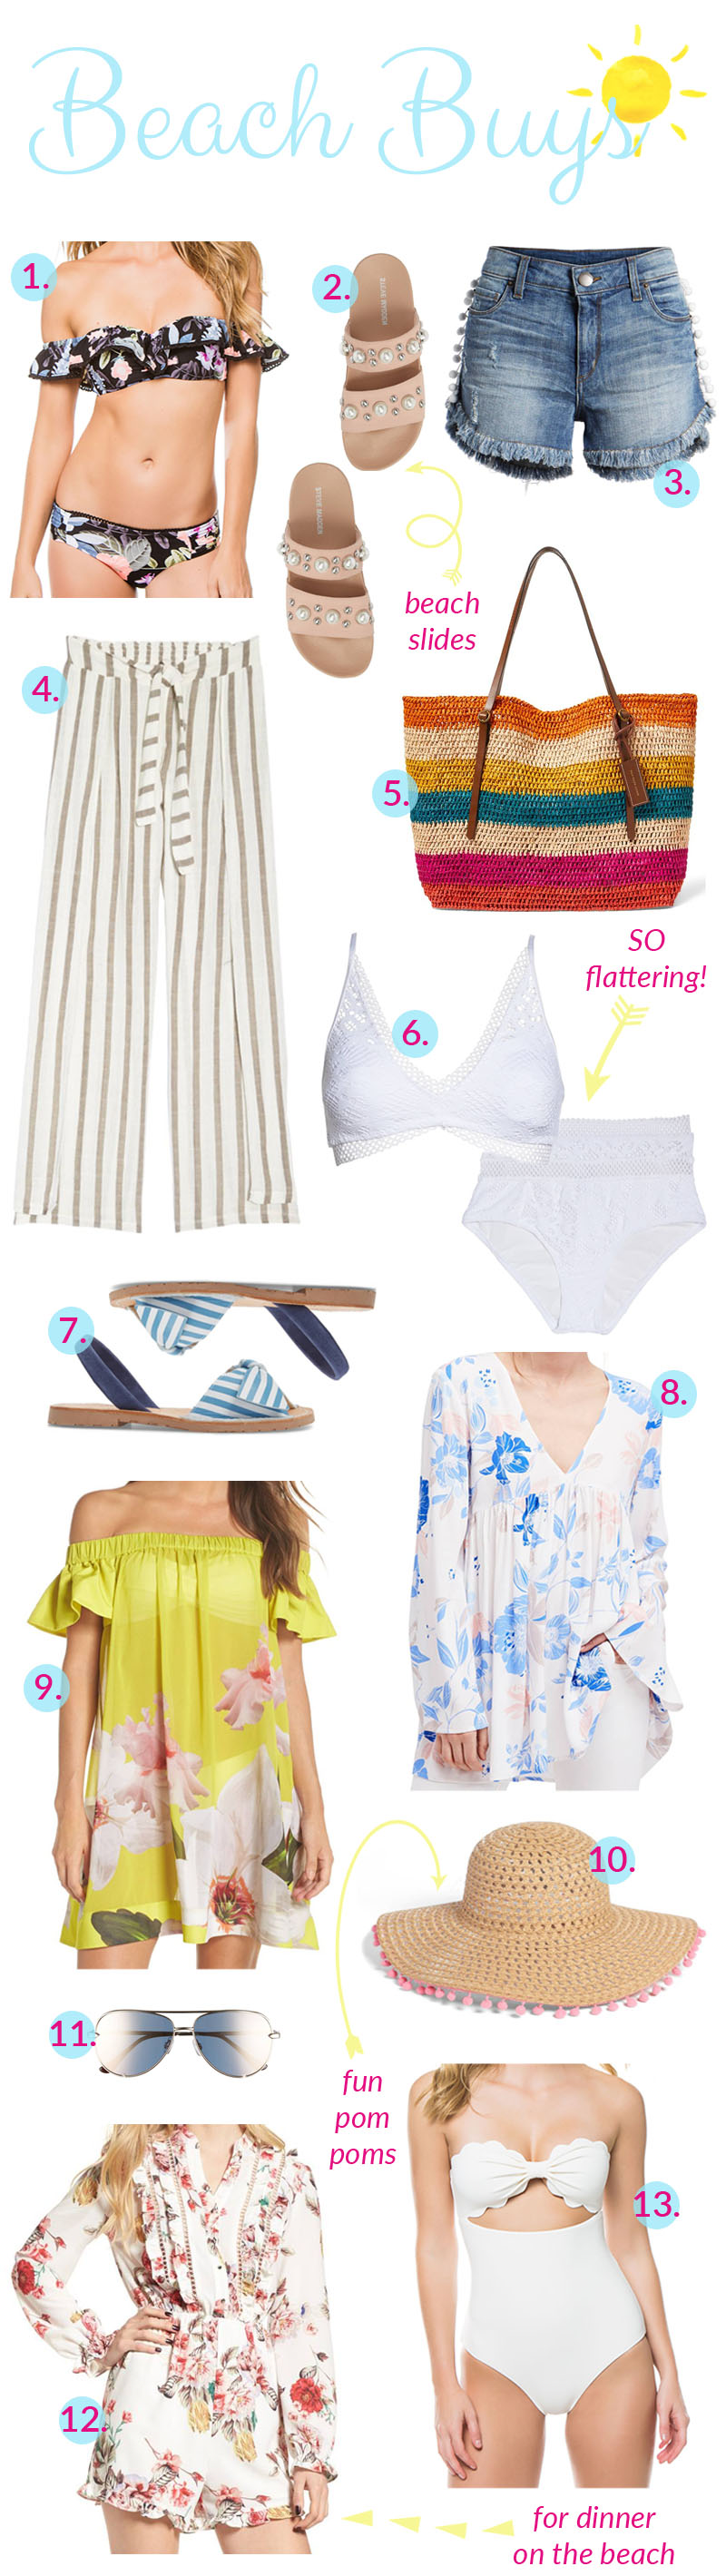 Beachwear Buys featured by popular fashion blogger, Walking in Memphis in High Heels